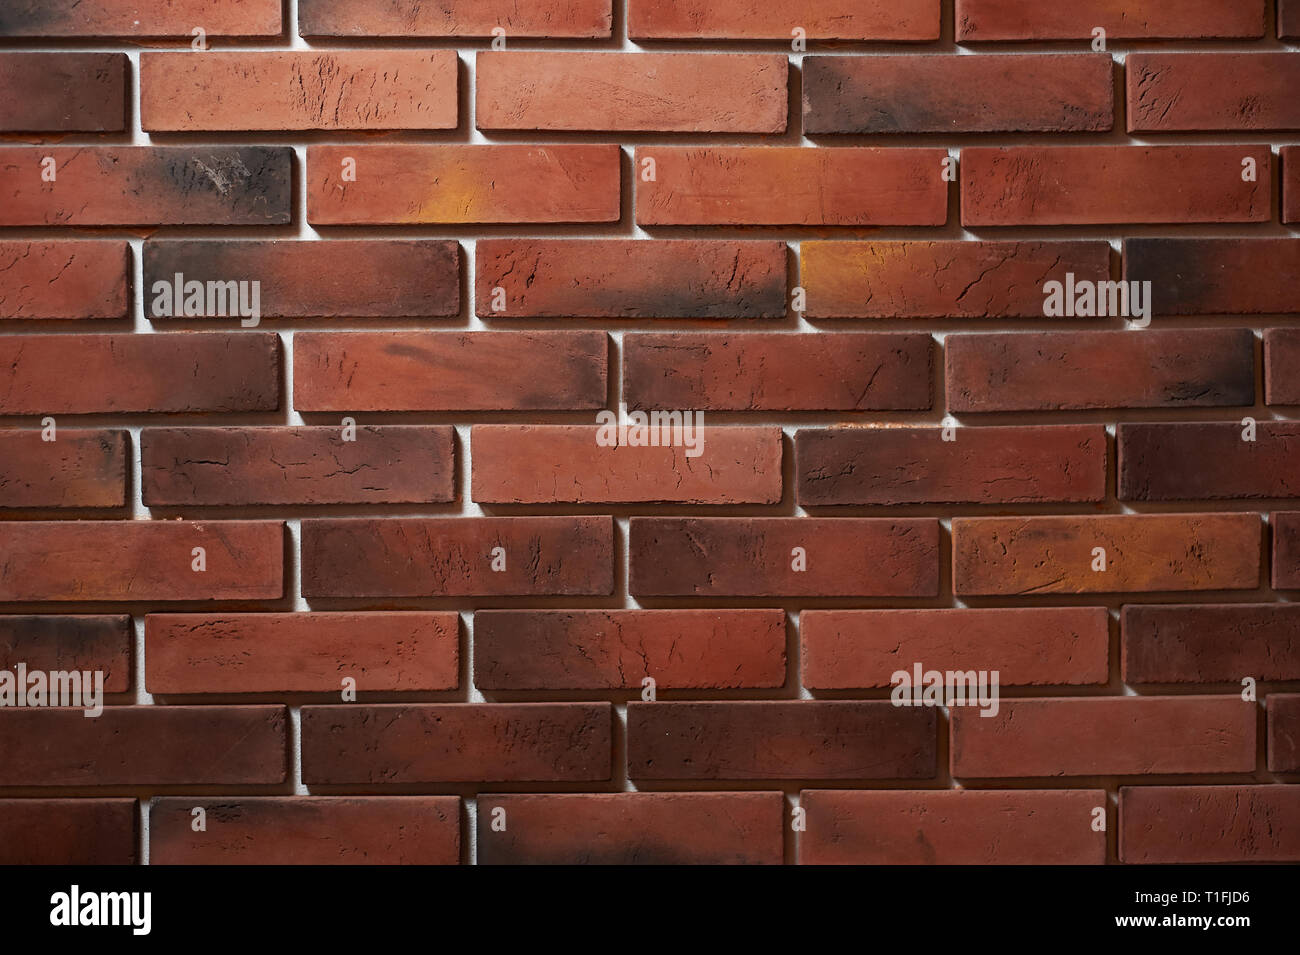 Red Brick Wall Texture For Wallpaper Design Brick Wall Background